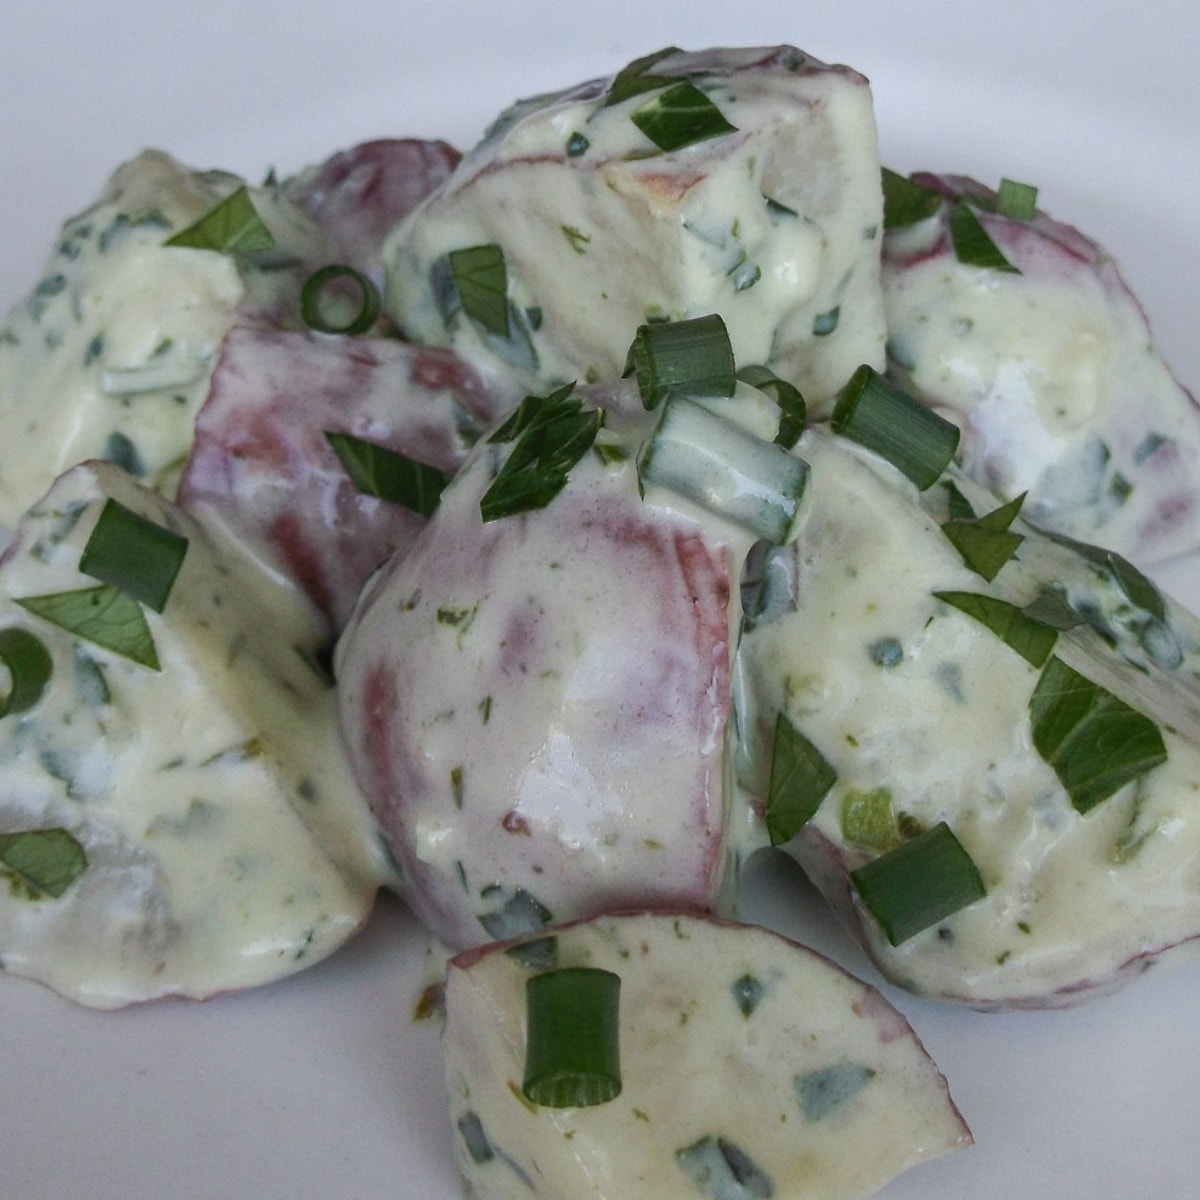 Potato salad with creamy dressing and diced scallions